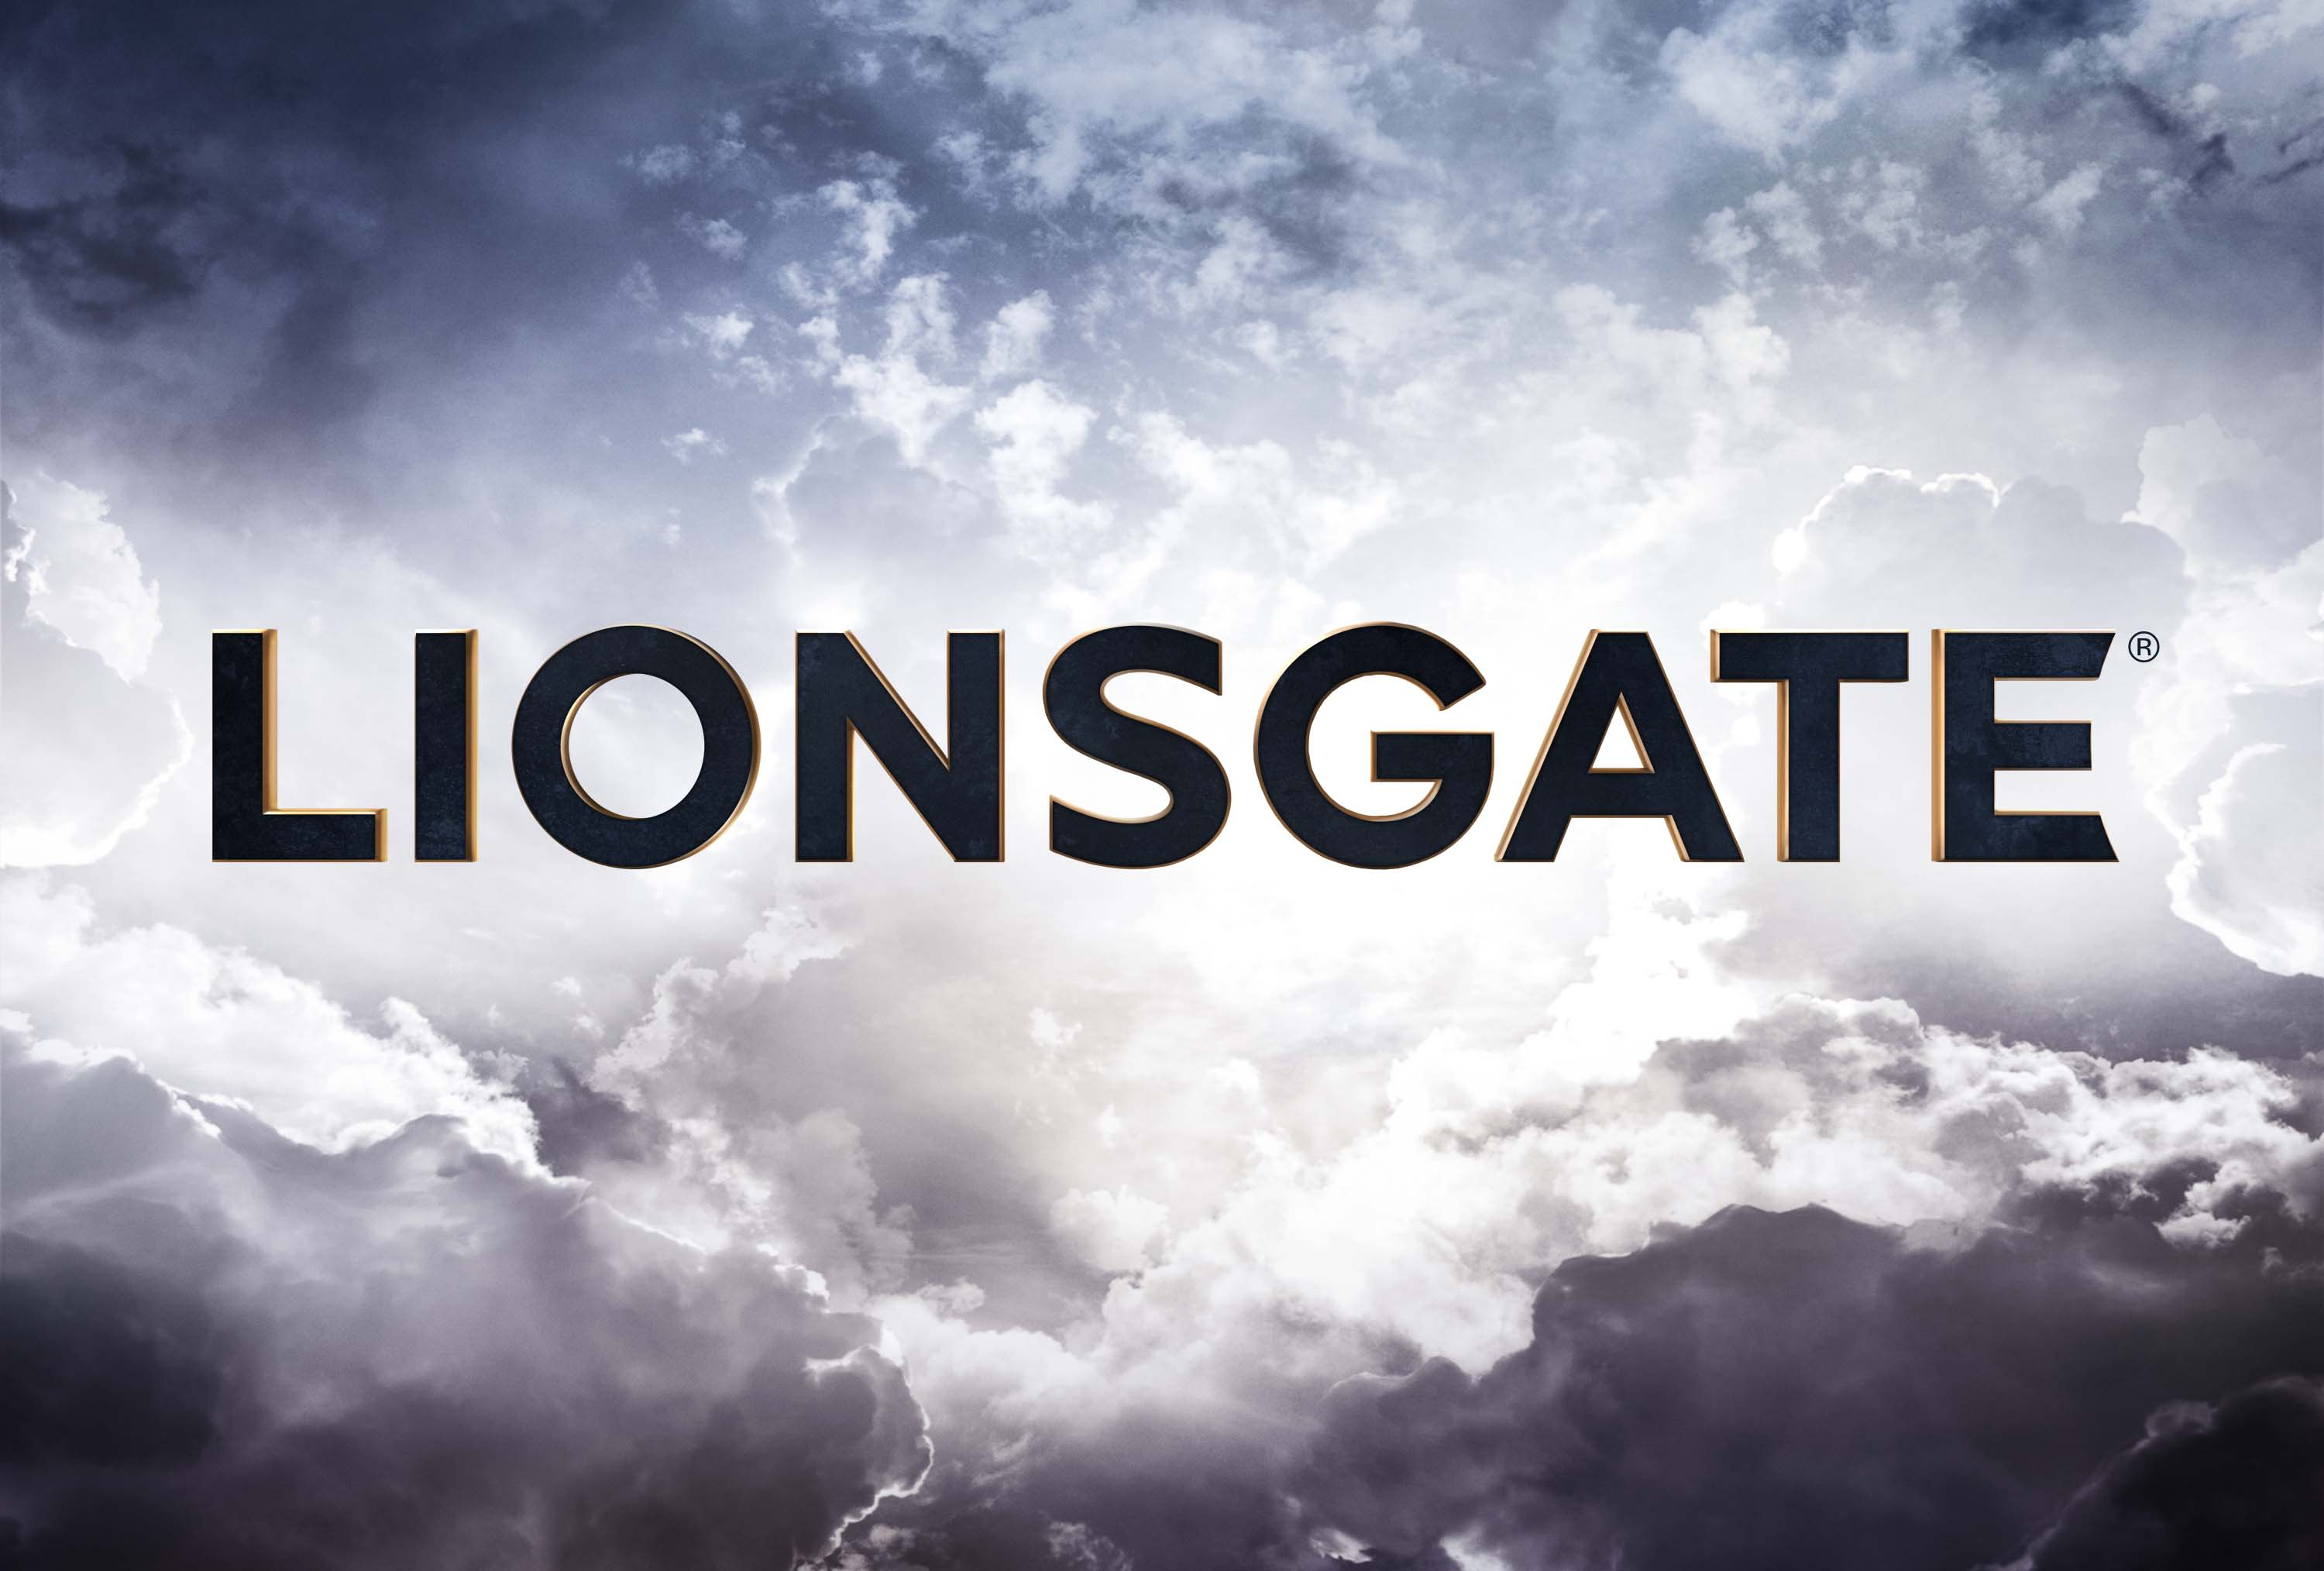 Lionsgate In Talks On Film Finance & Distribution Deal With China's Hunan TV